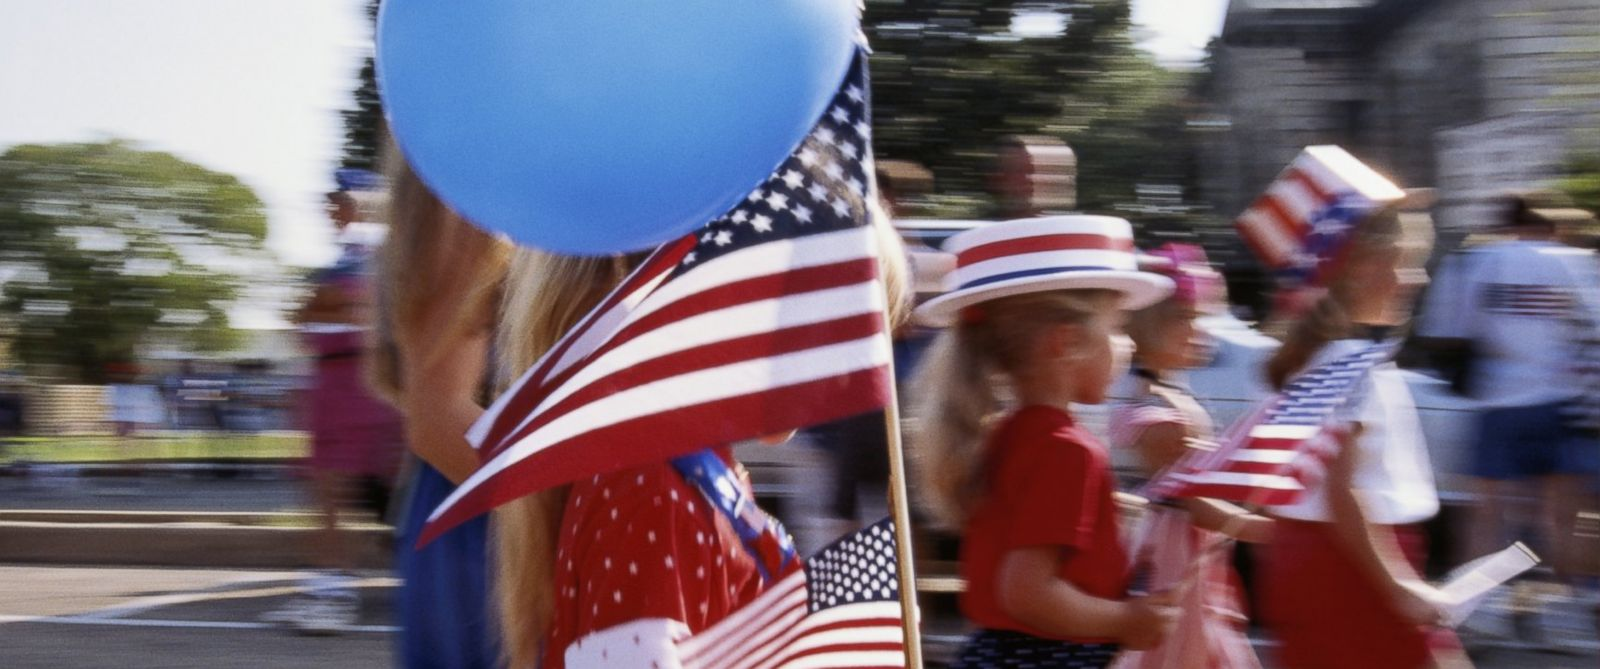 PHOTO: Children march in a Fourth of July parade in Fredericksburg, Texas in this undated stock photo.